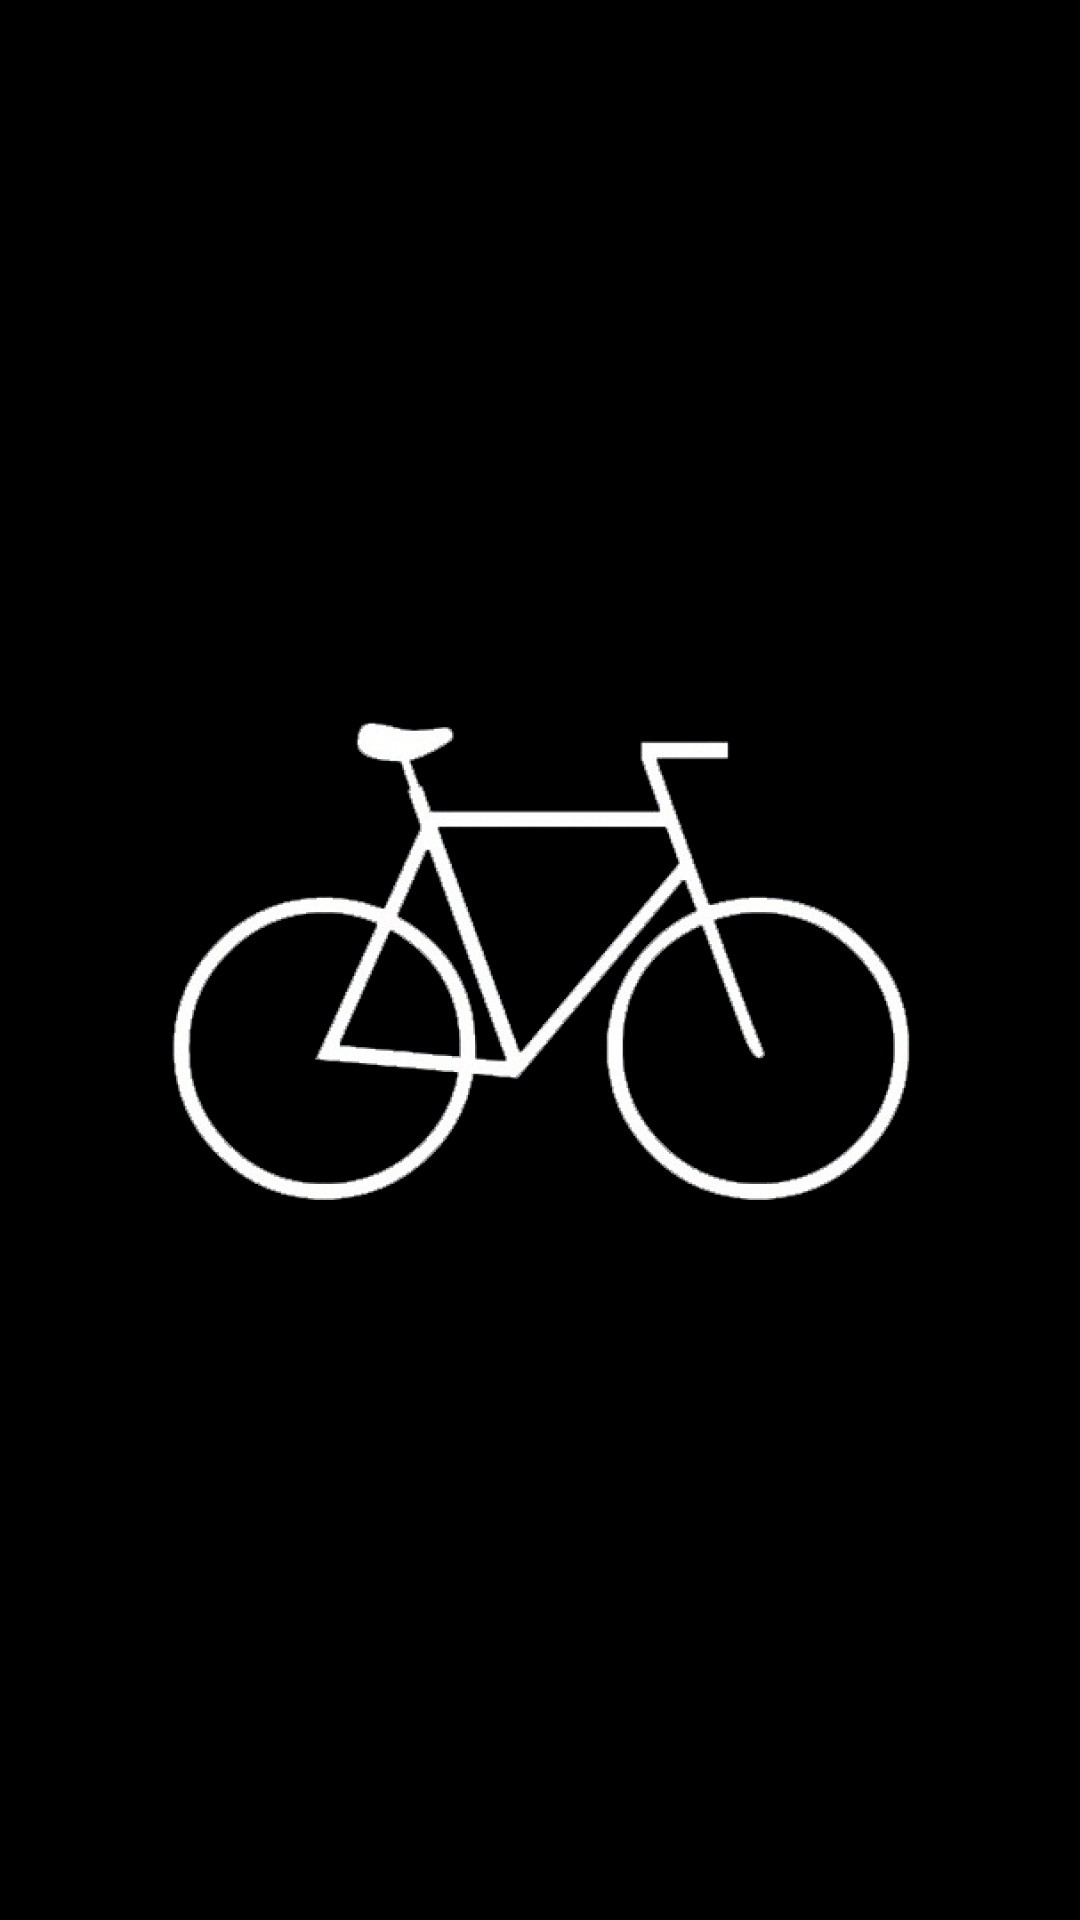 Flat Simple Bicycle Hipster iPhone 6 Plus HD Wallpaper …